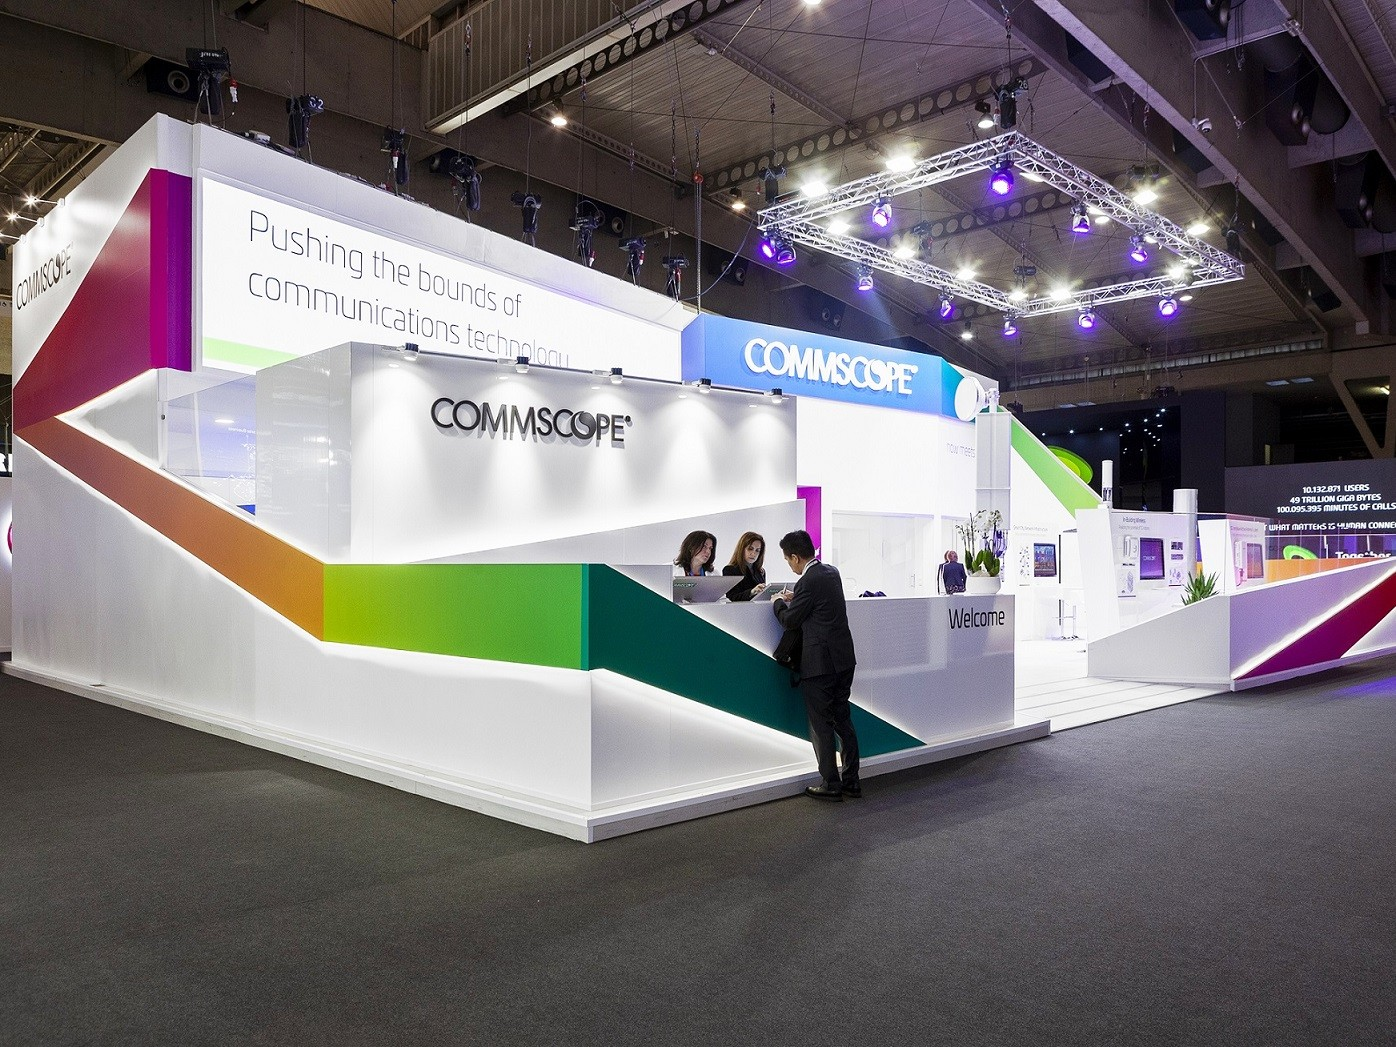 Pro Expo Communication Stands Events : Commscope stands stands